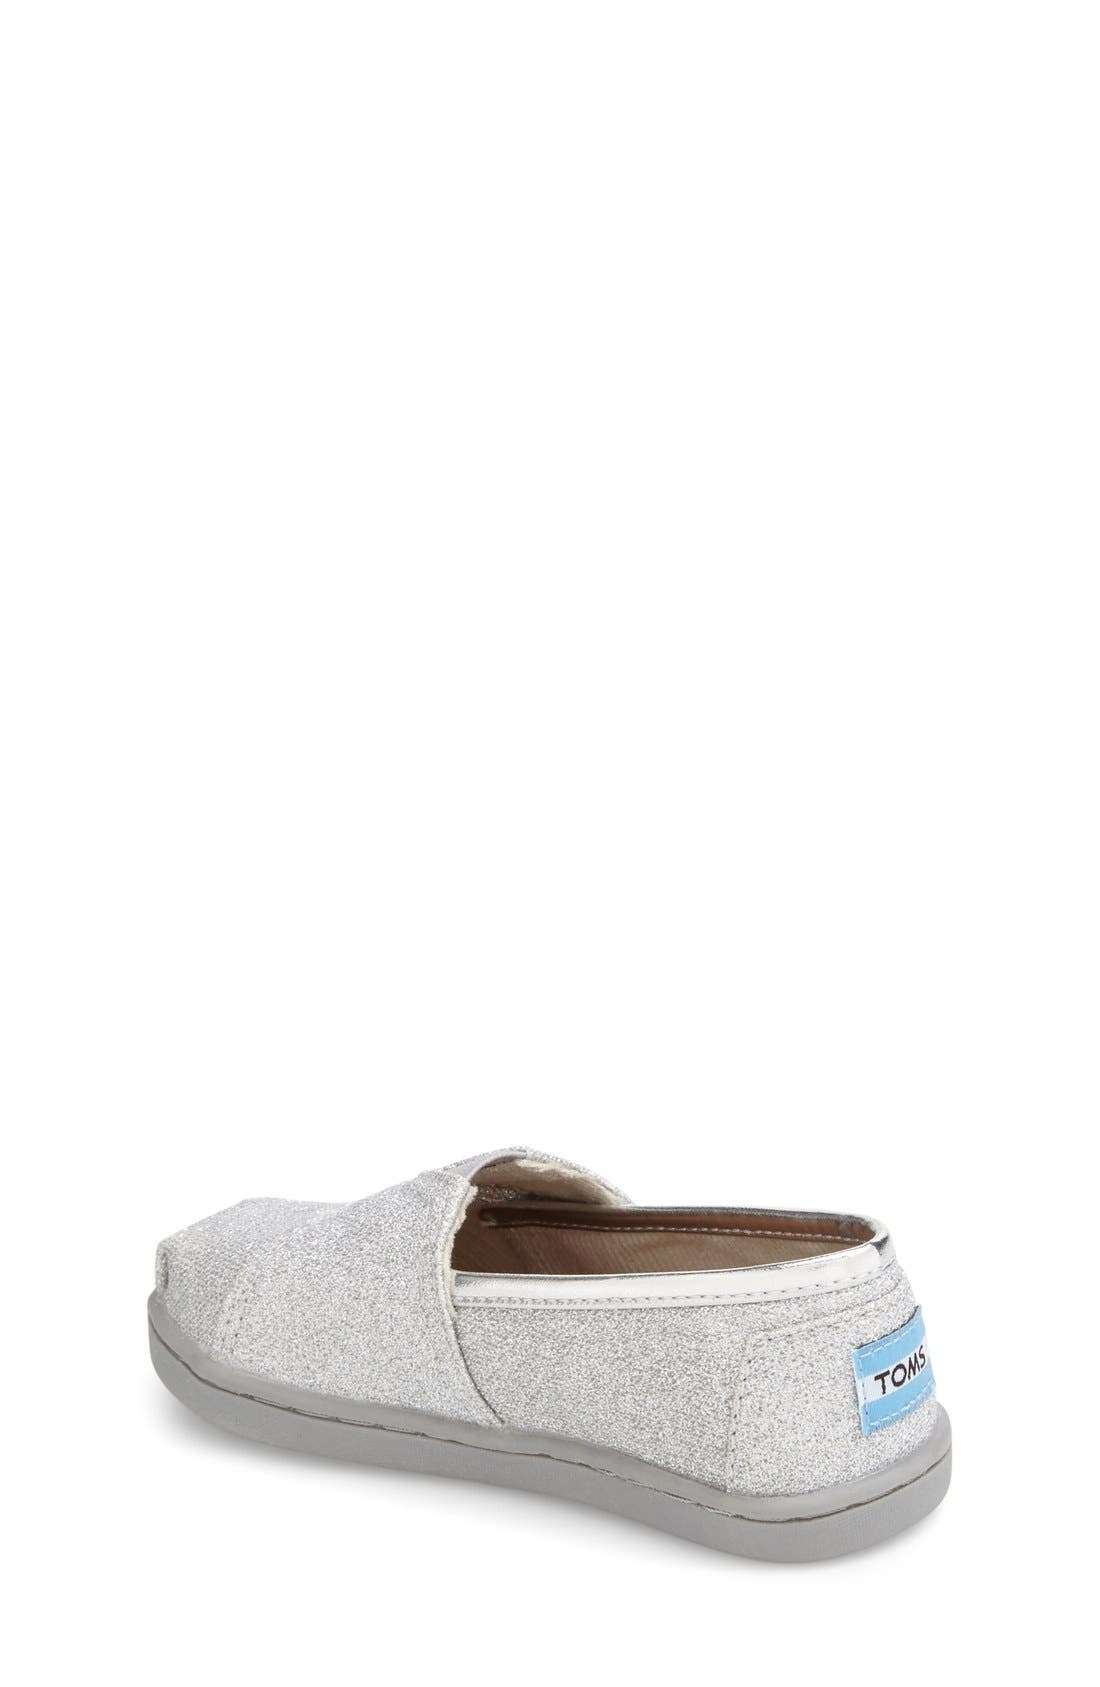 Alternate Image 2  - TOMS 'Classic Tiny - Glimmer' Slip-On (Baby, Walker & Toddler)